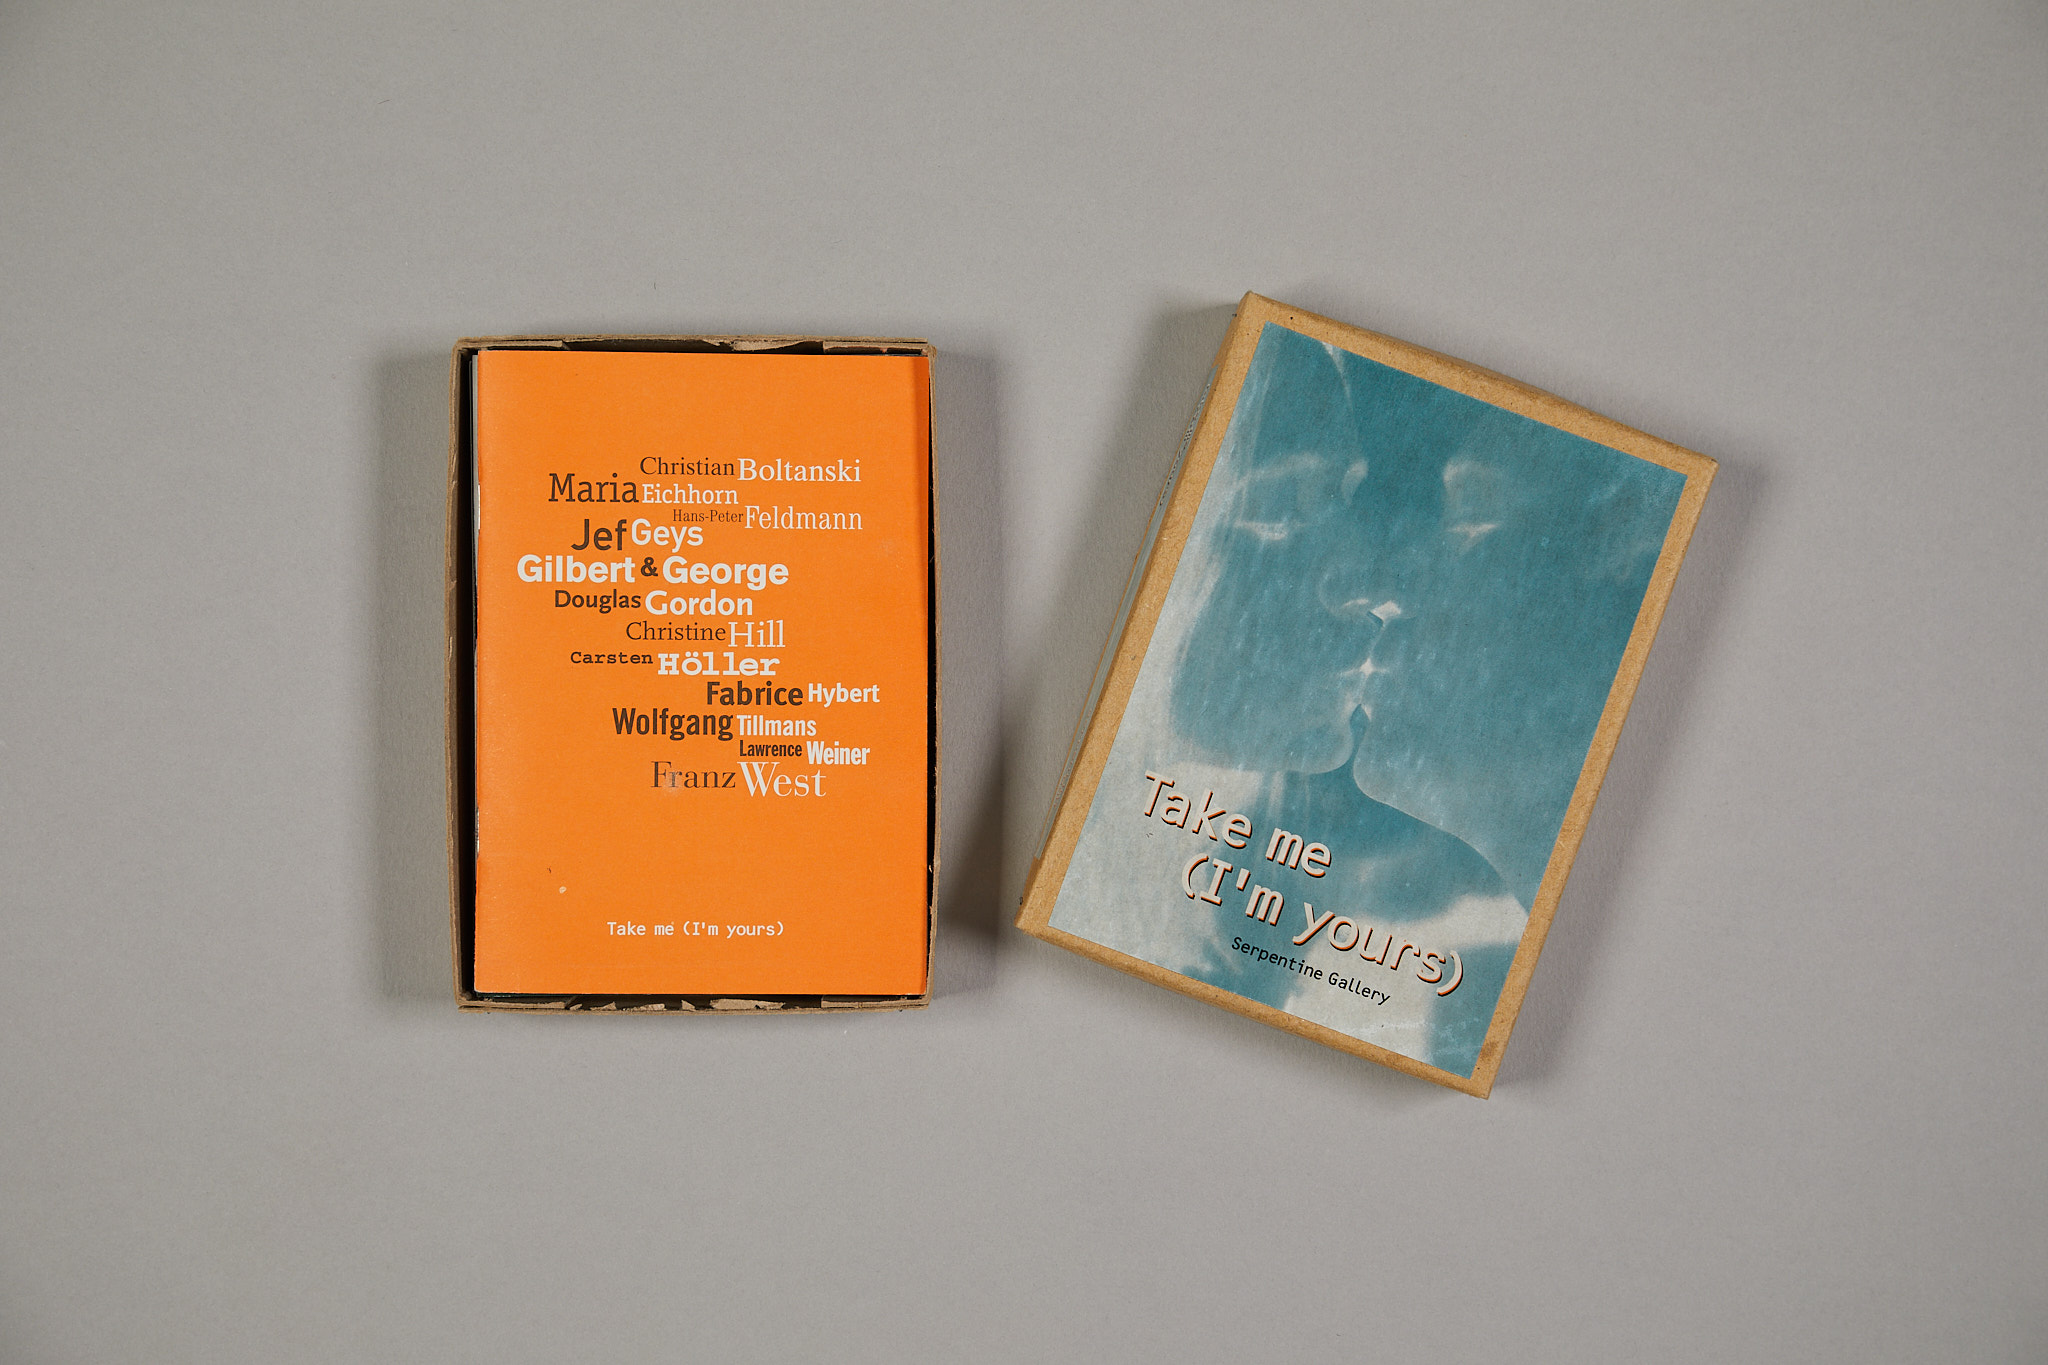 Take me (I'm yours), curated by Hans Ulrich Obrist, organised by Andrea Schlieker (1995)